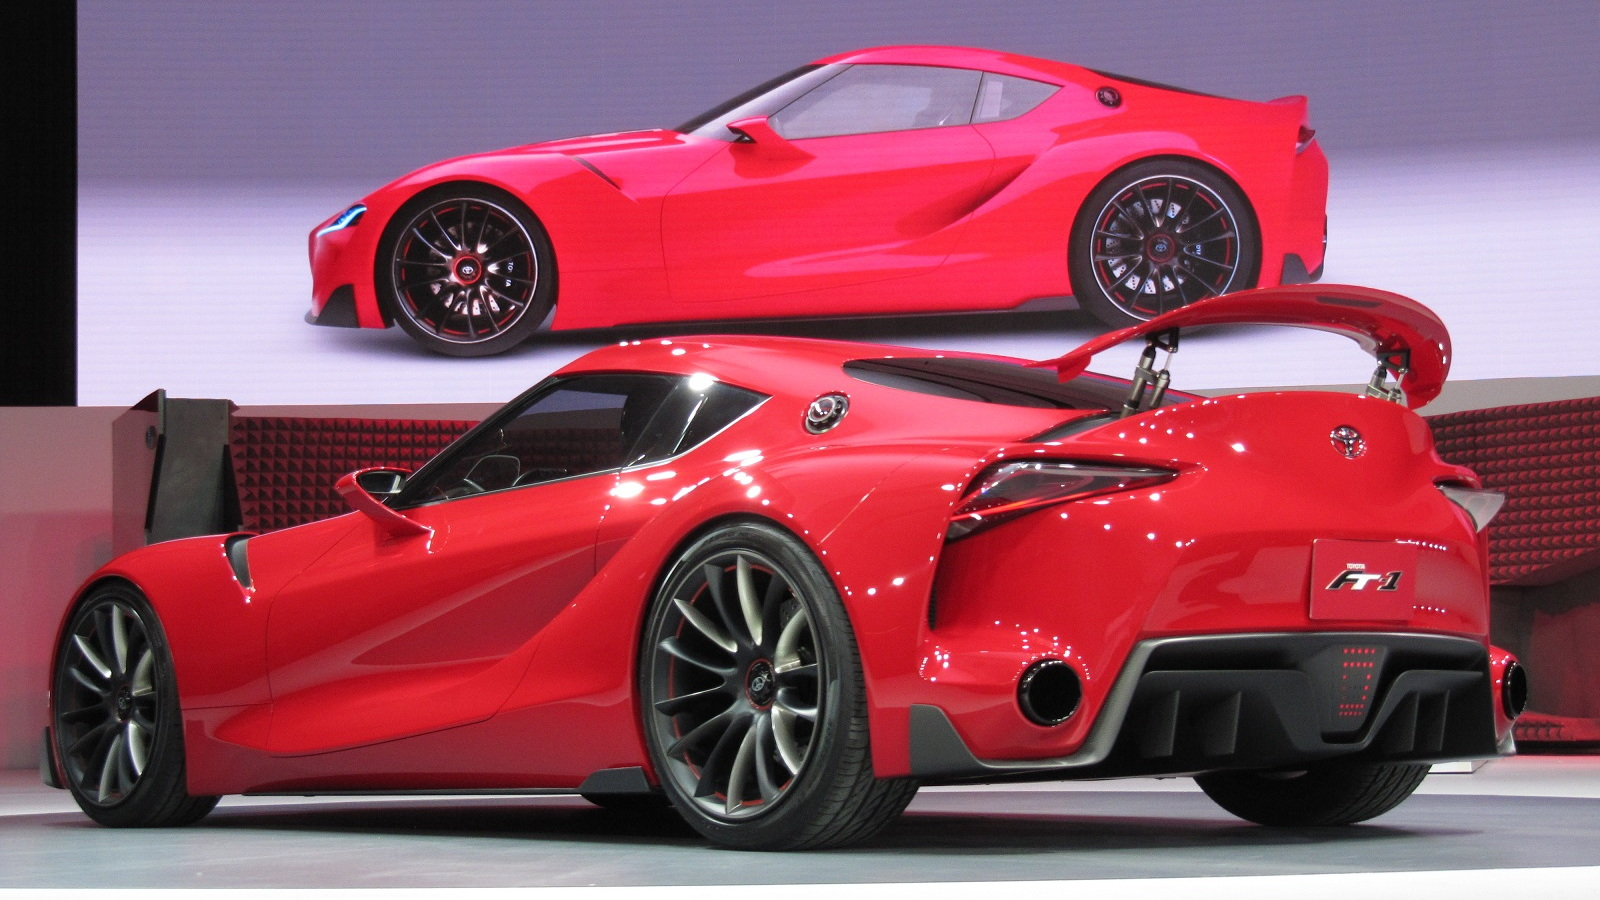 Toyota FT-1 Concept at 2014 Detroit Auto Show